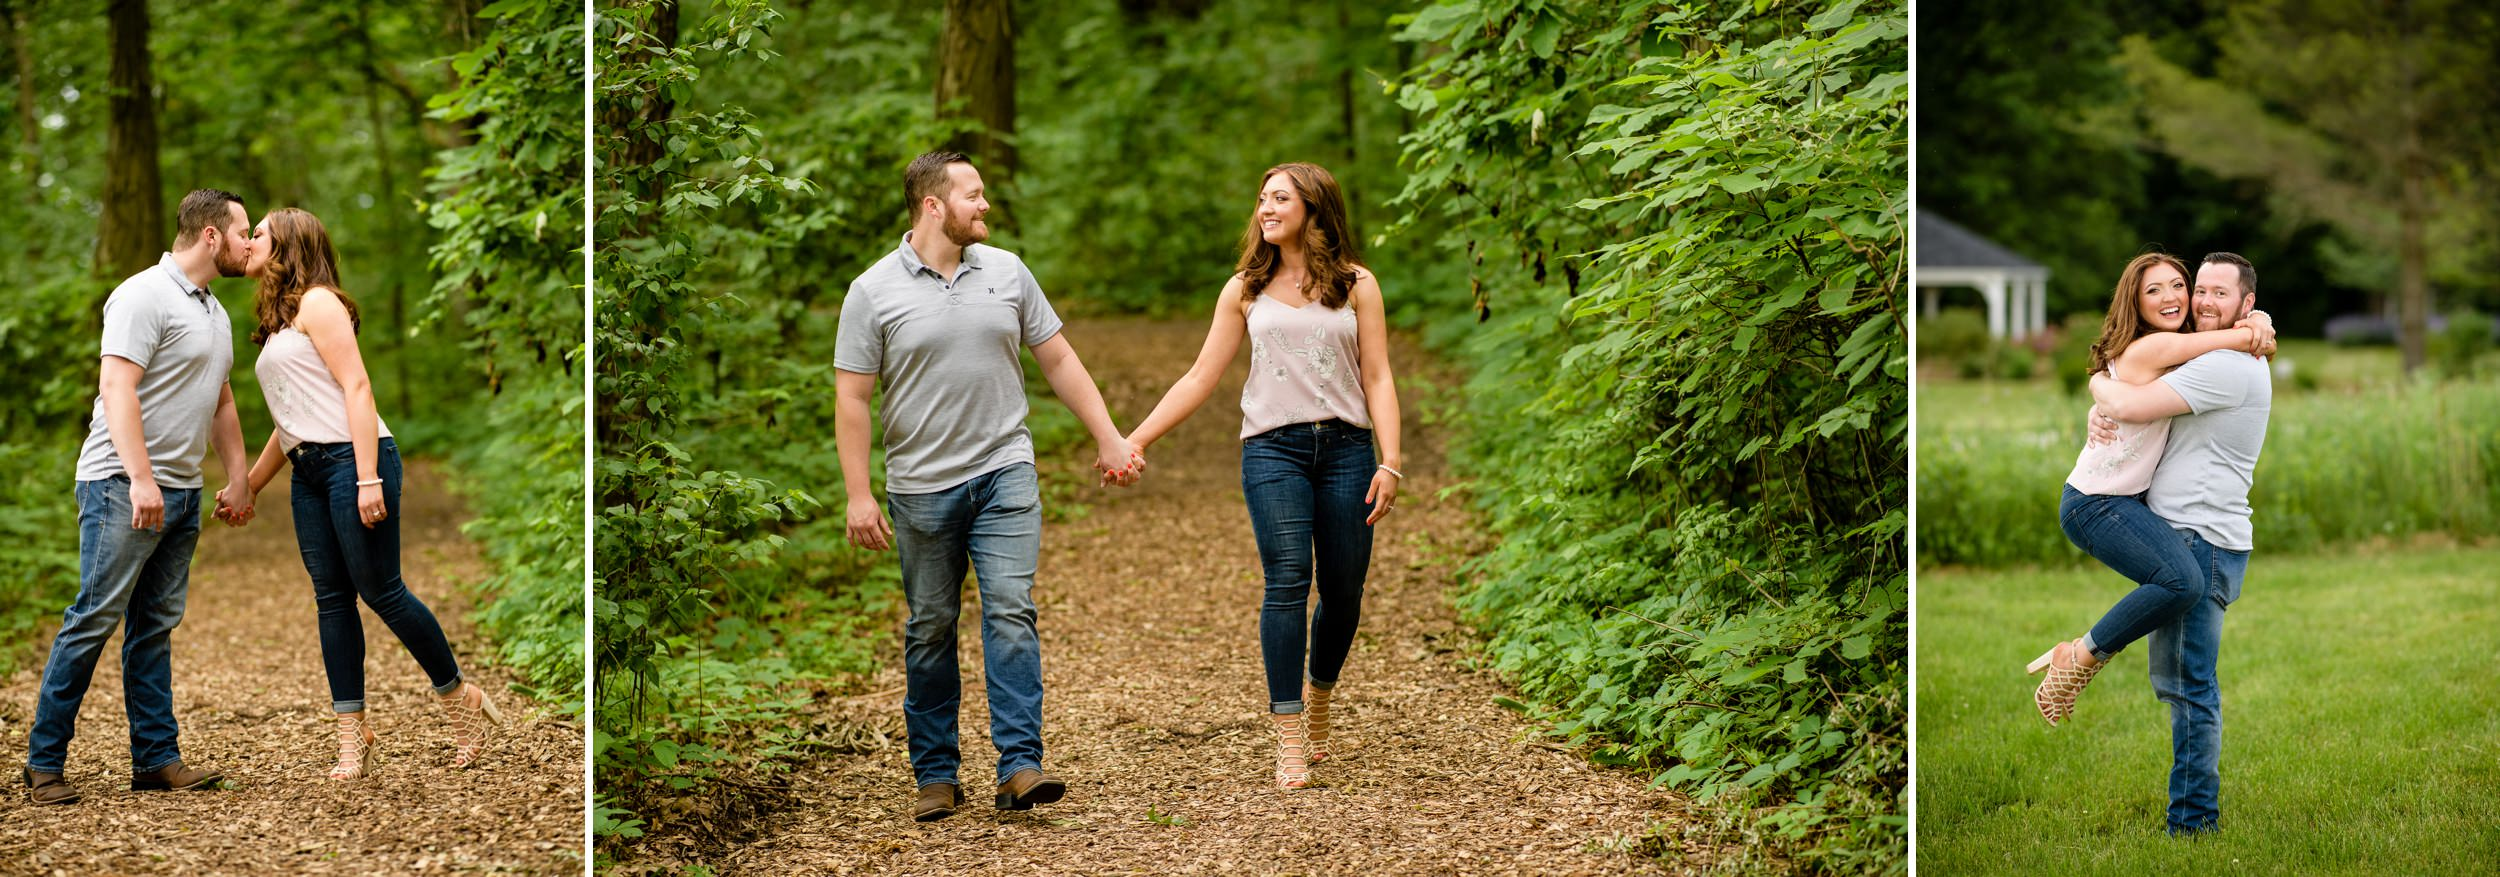 Romantic and fun engagement pictures at Gabis Arboretum.